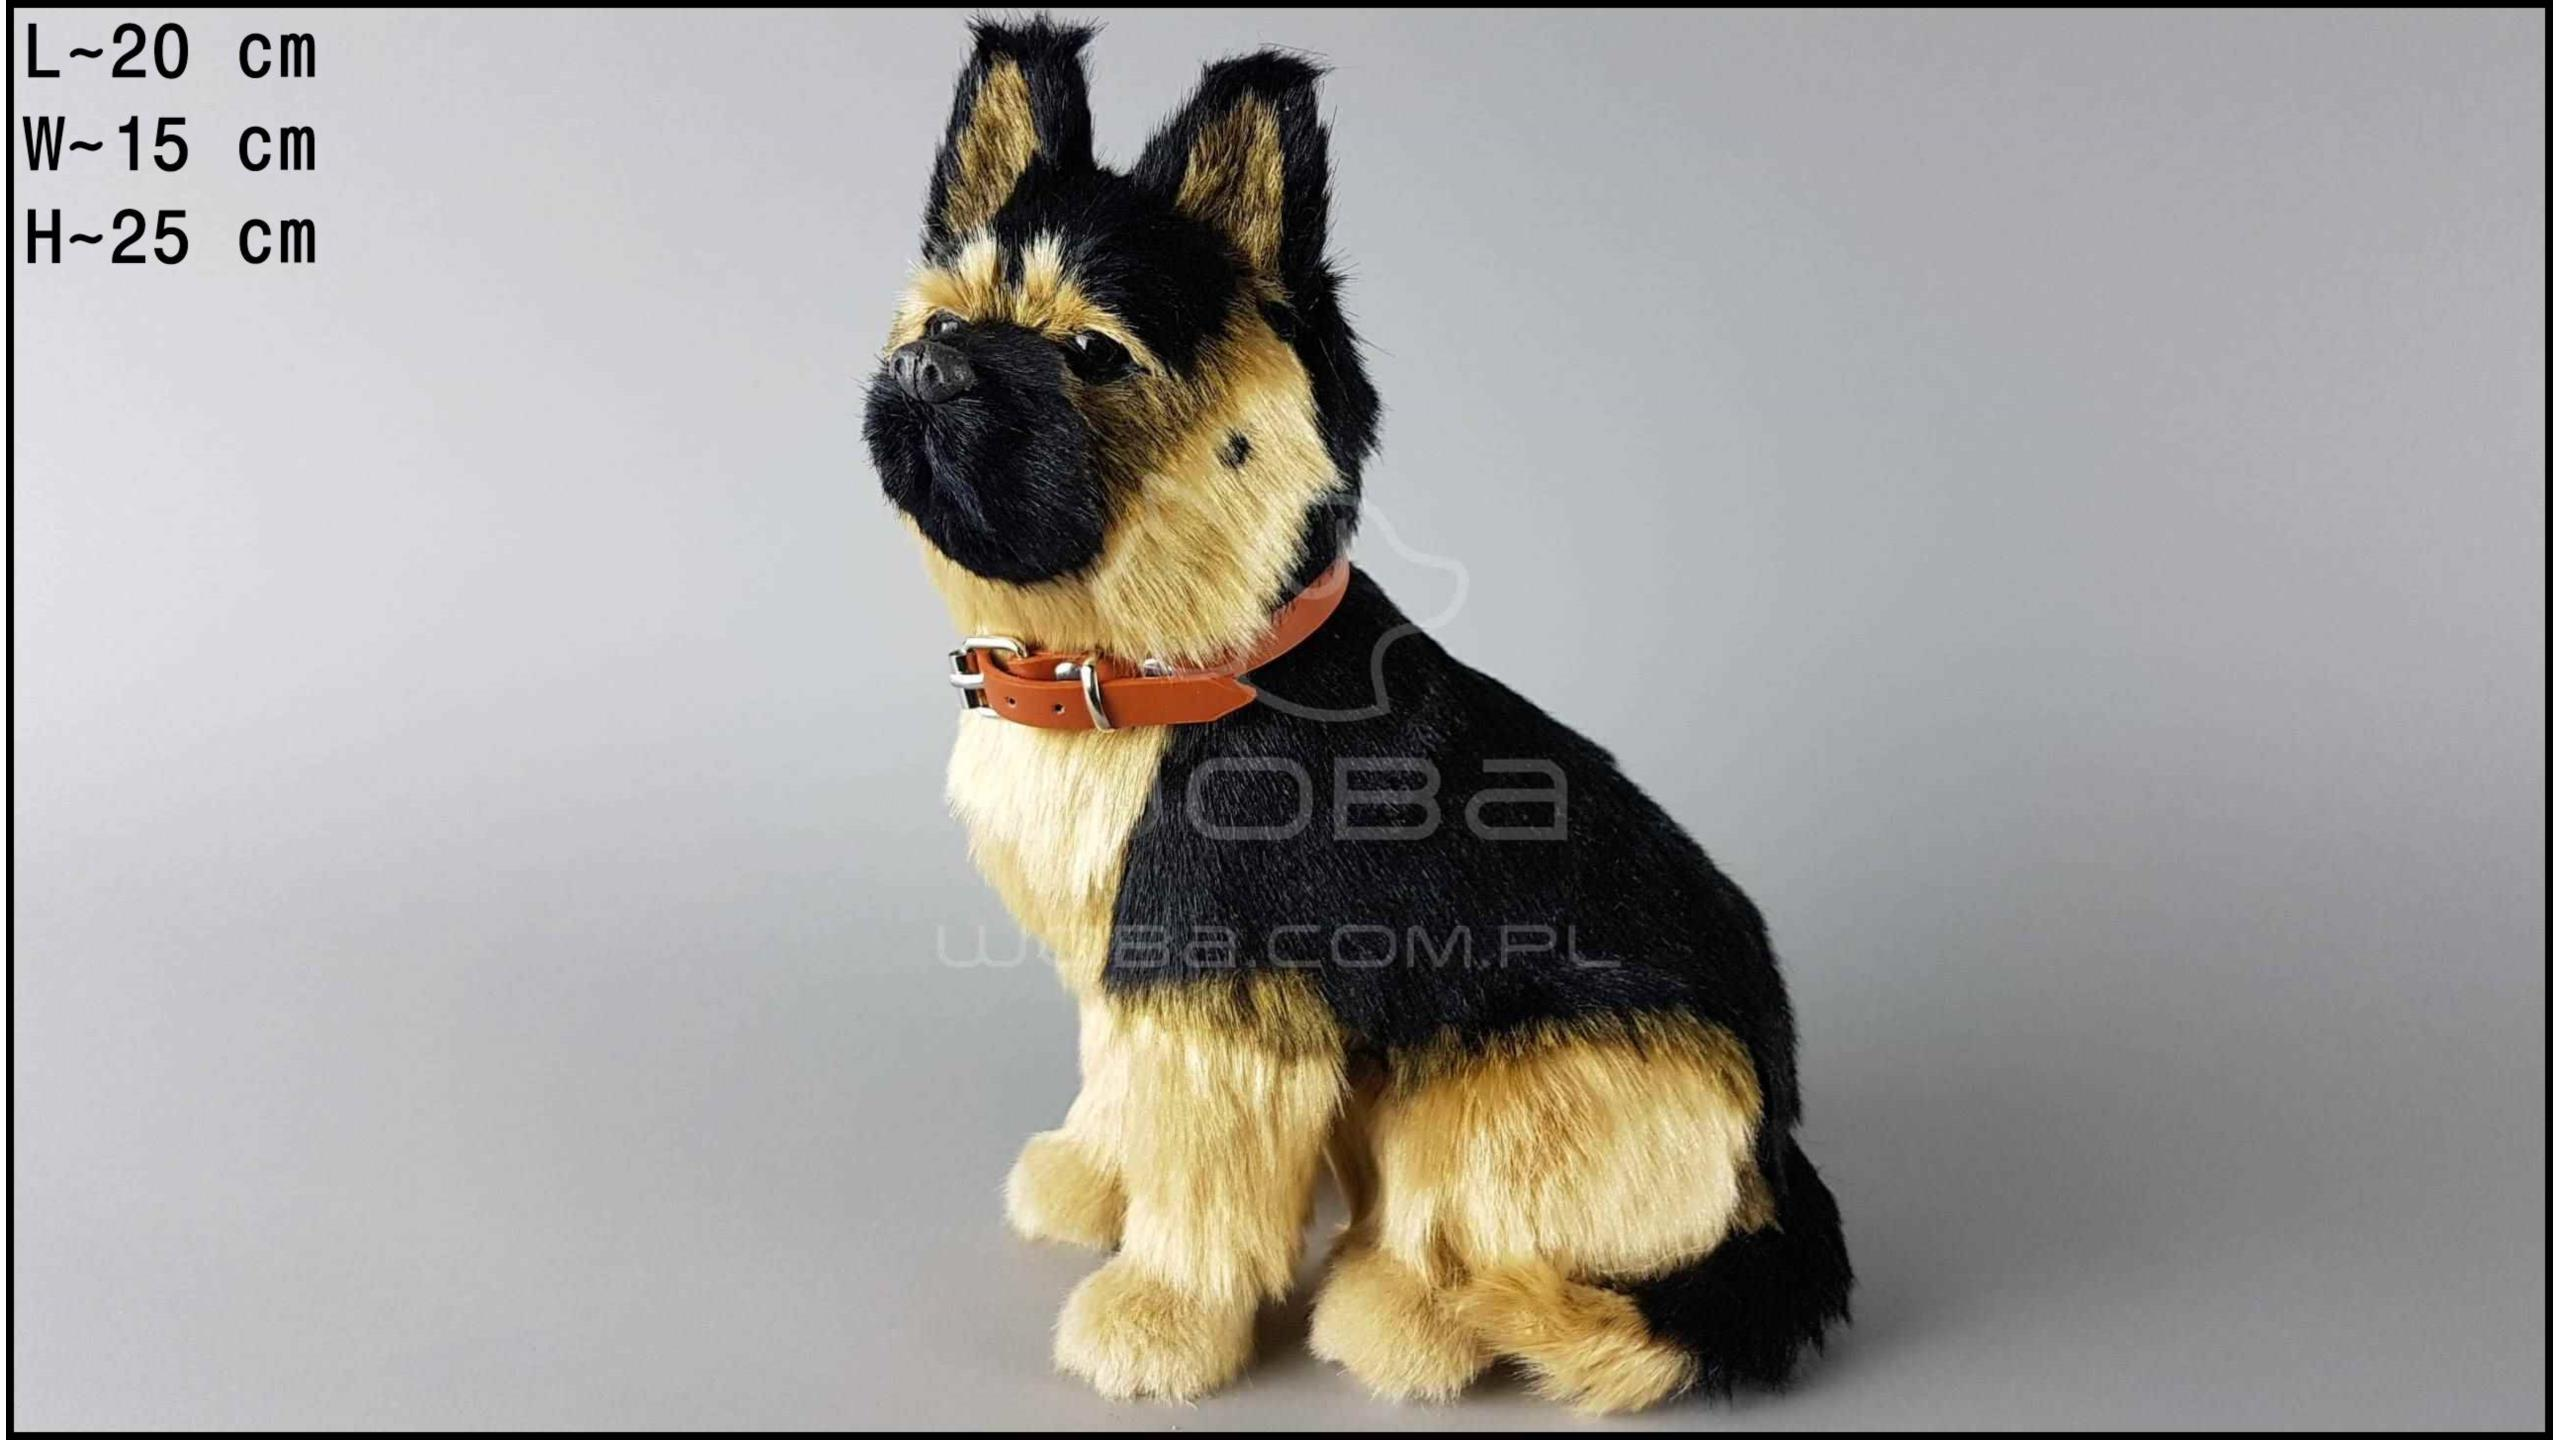 Large dog - German shepherd